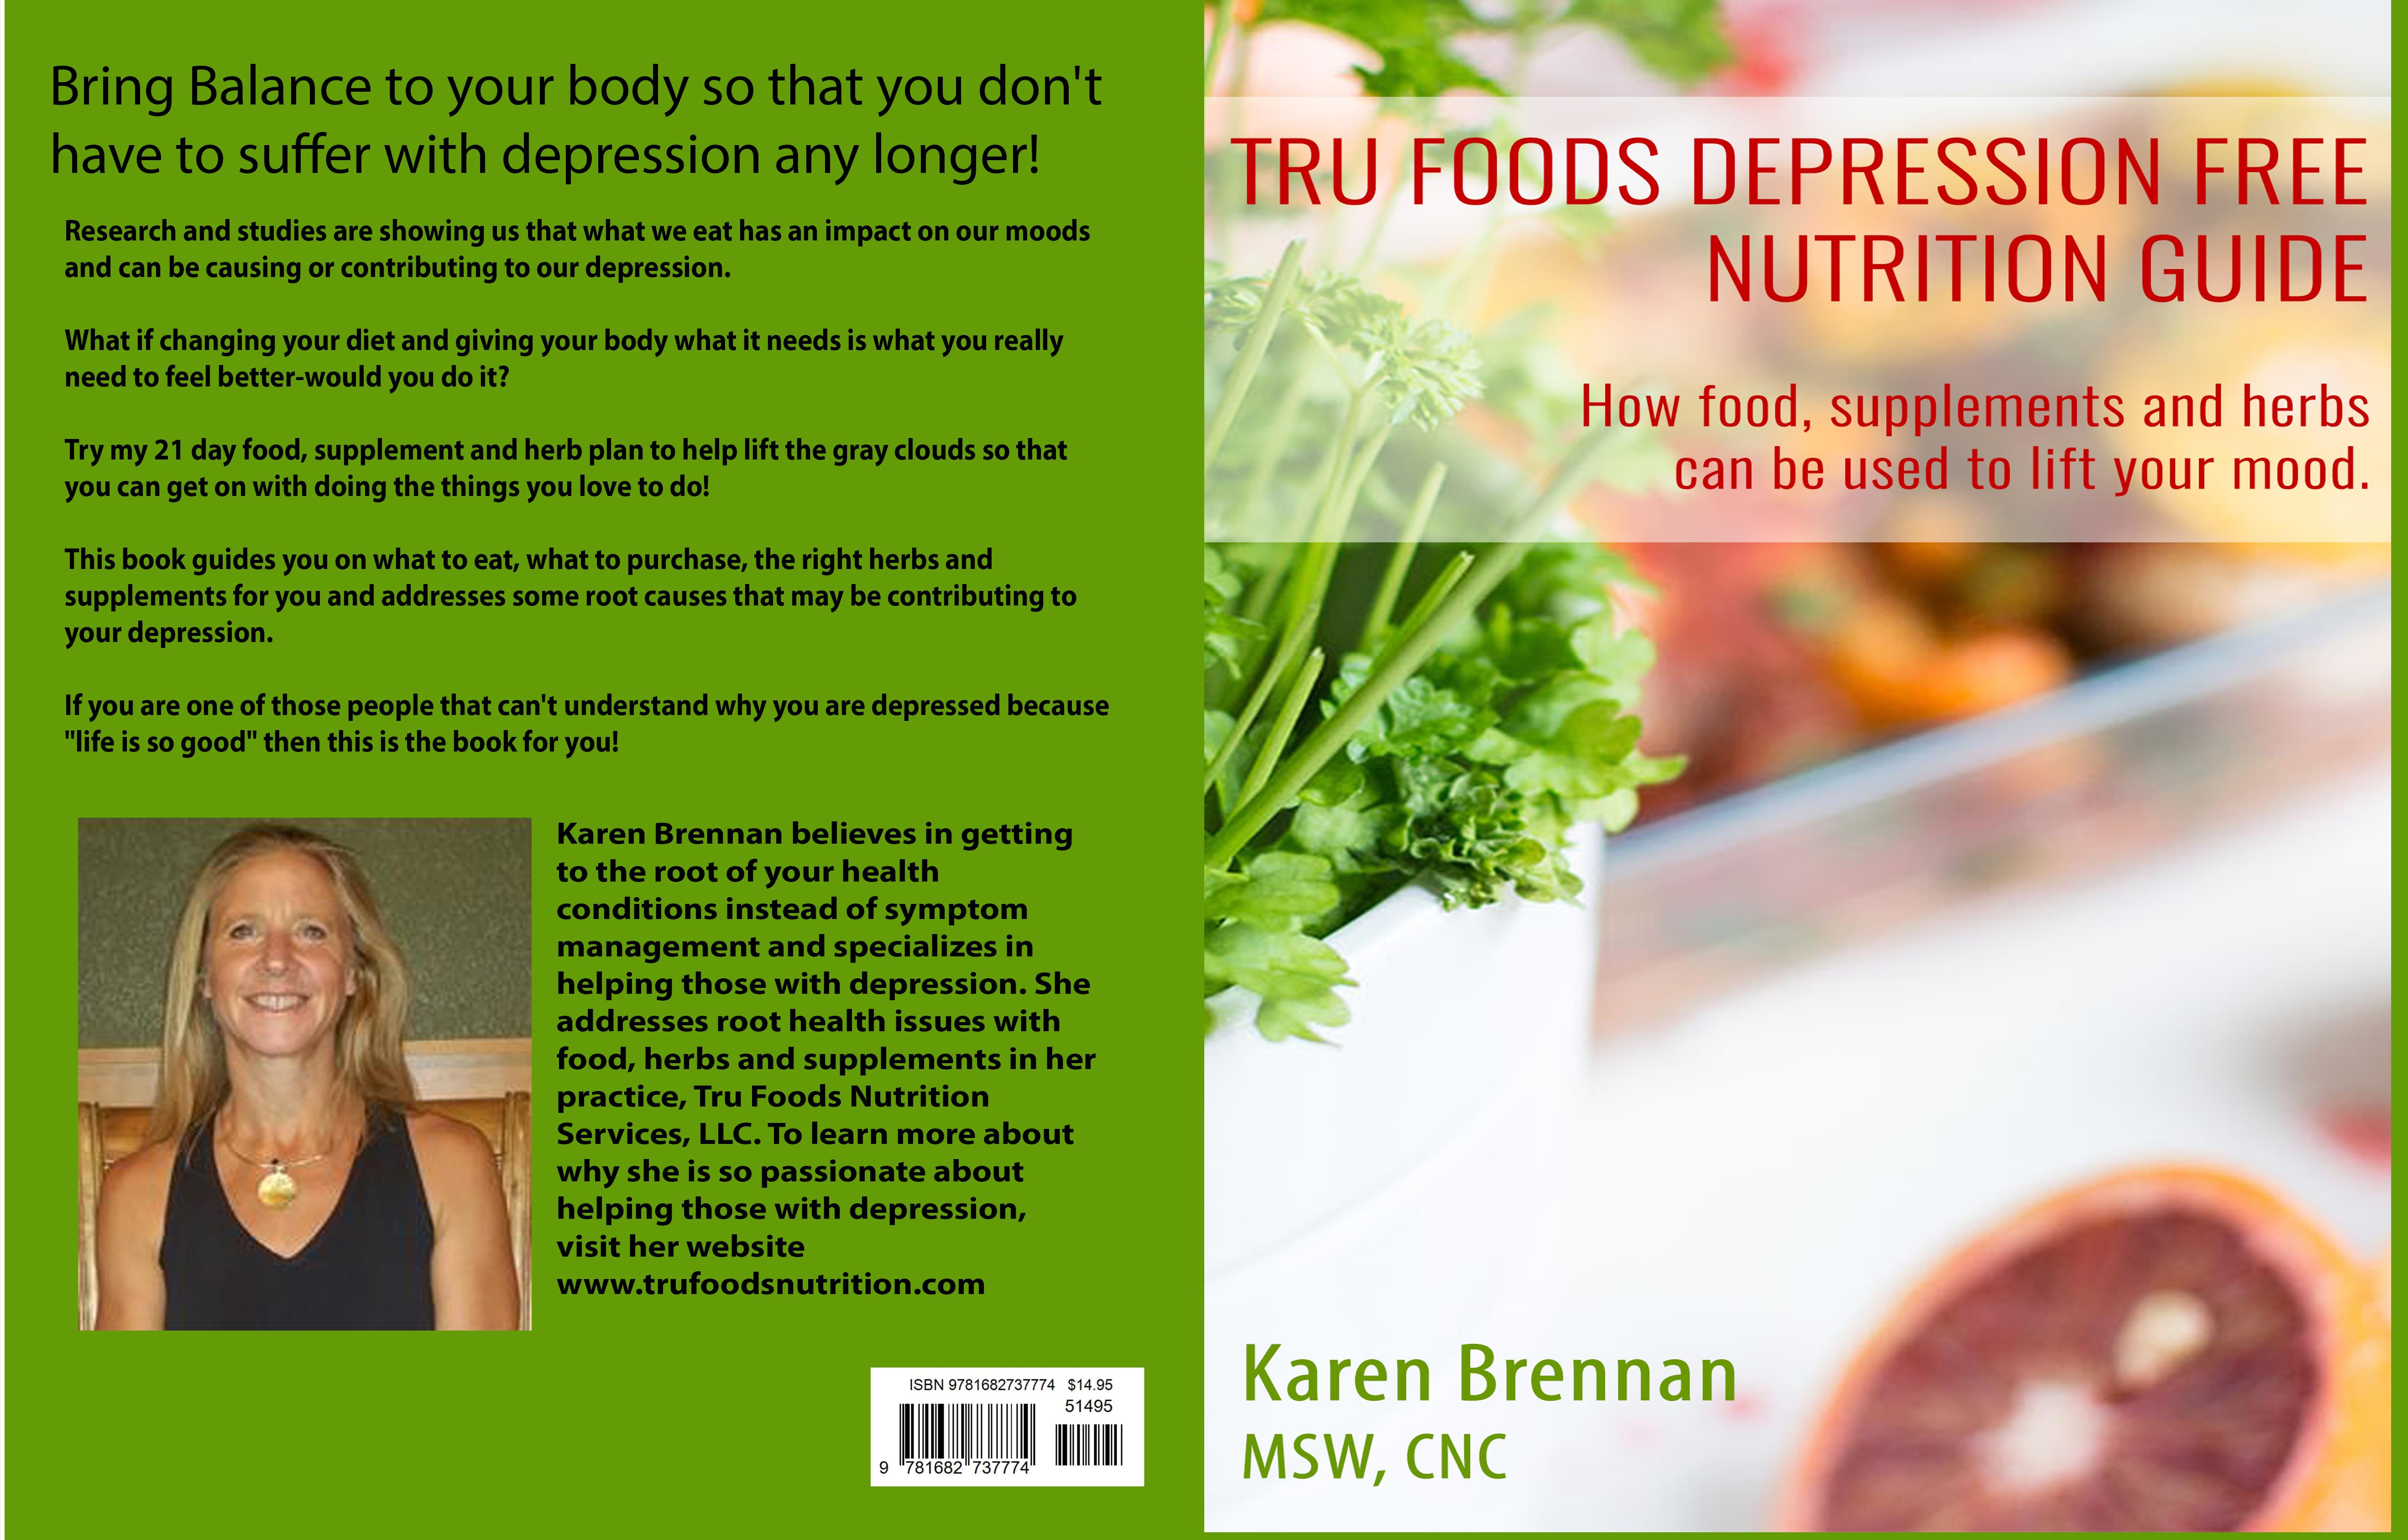 Tru Foods Depression Free Nutrition Guide How Foods, Supplements and herbs can be used to lift your mood cover image